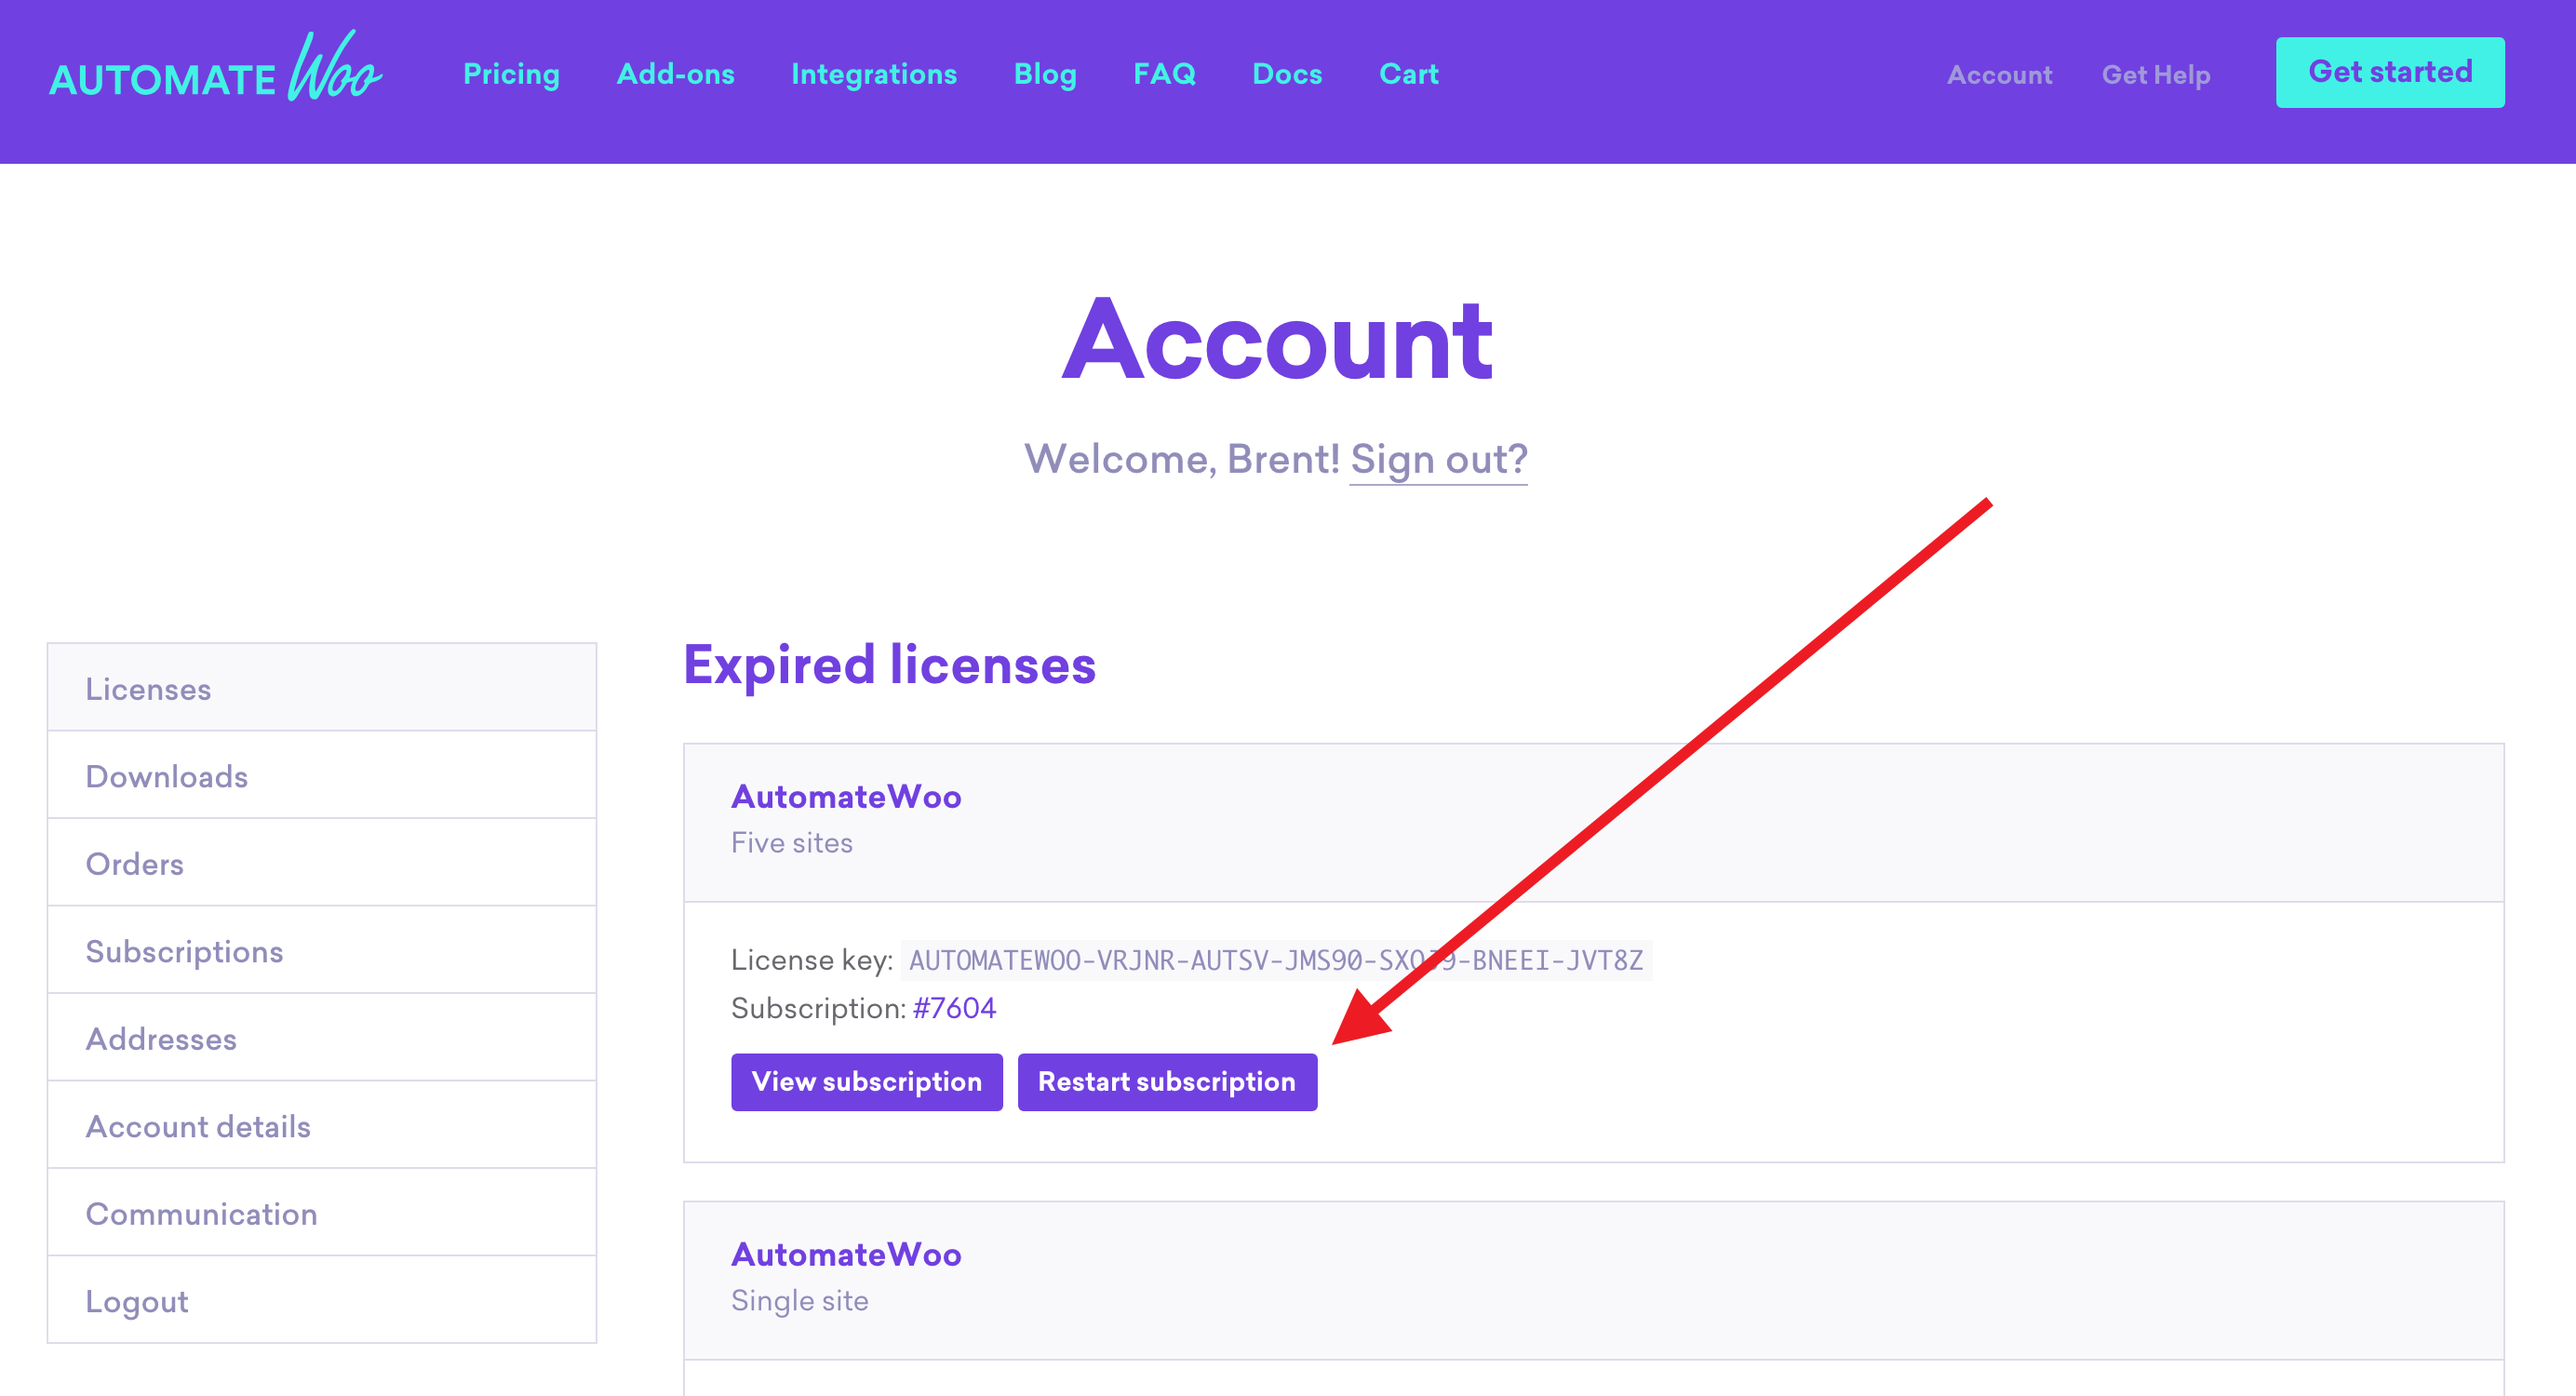 Restart subscription button on Licenses account page